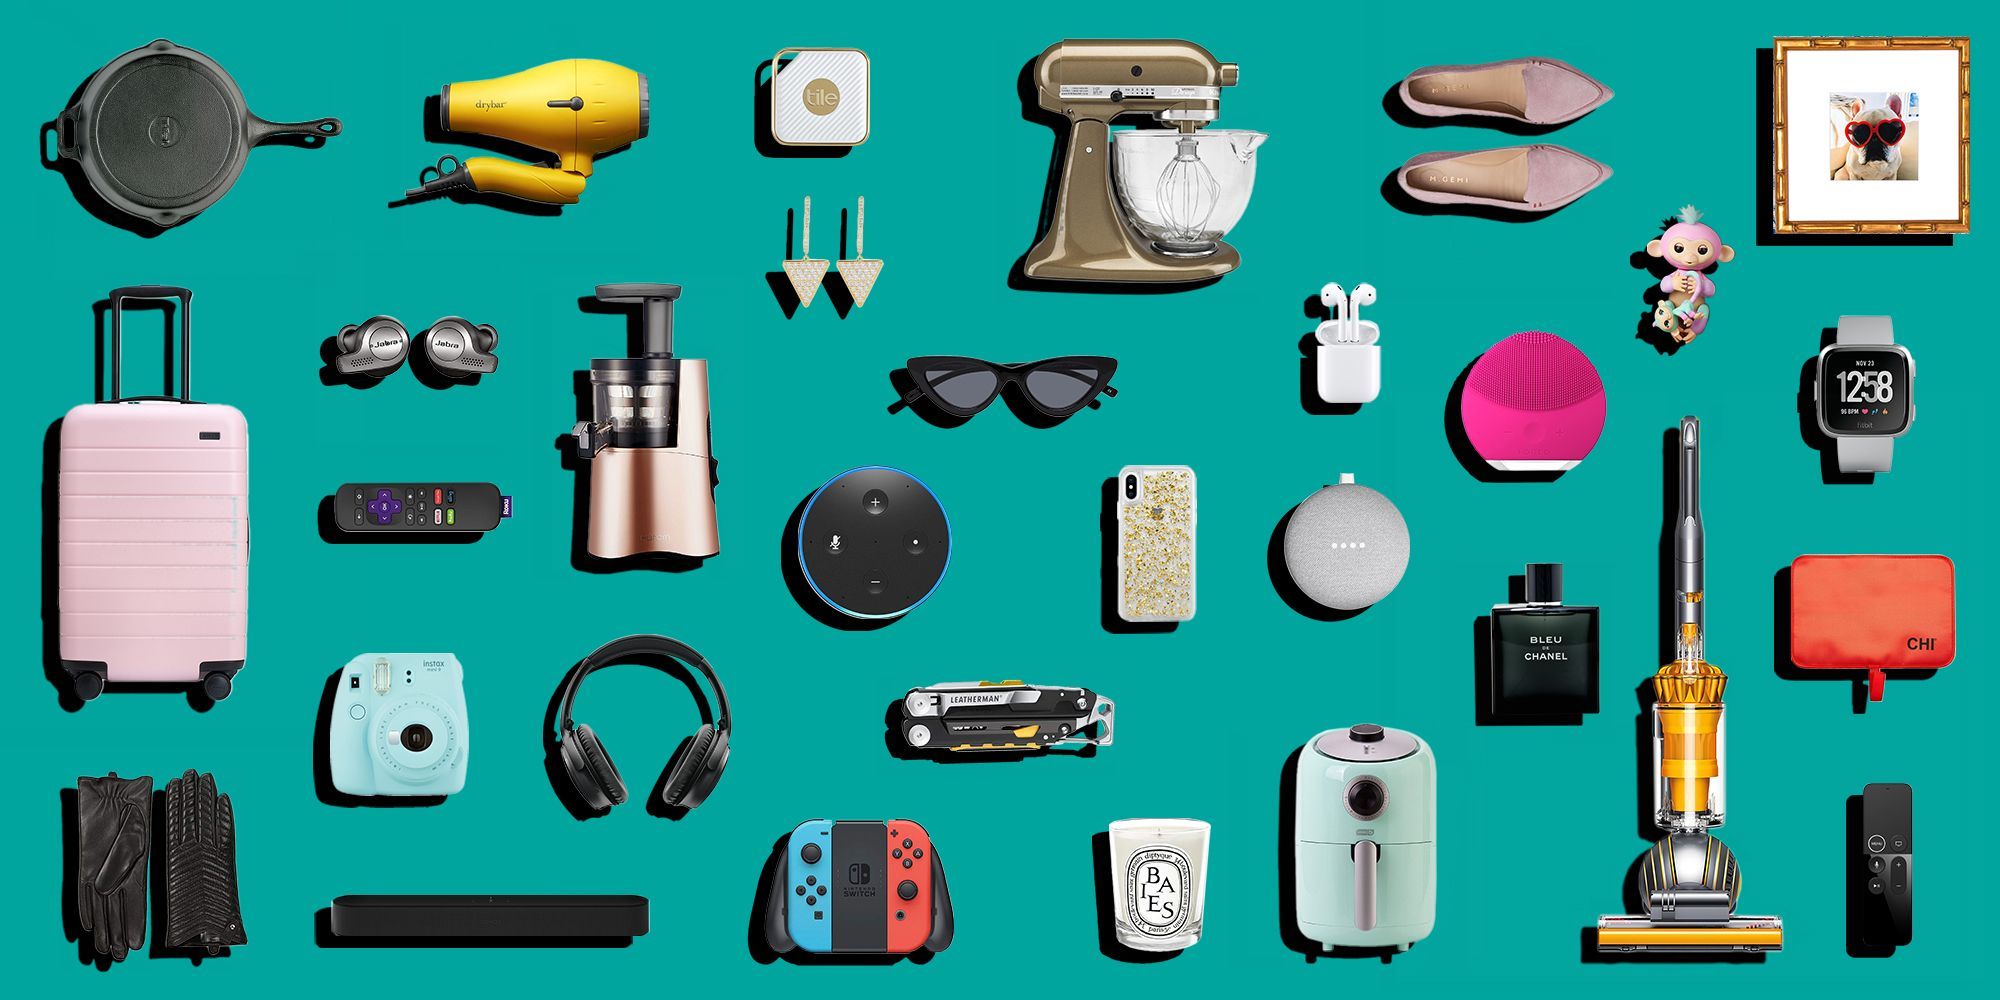 These Are The Tech Gifts Everyone Is Obsessed With This Year